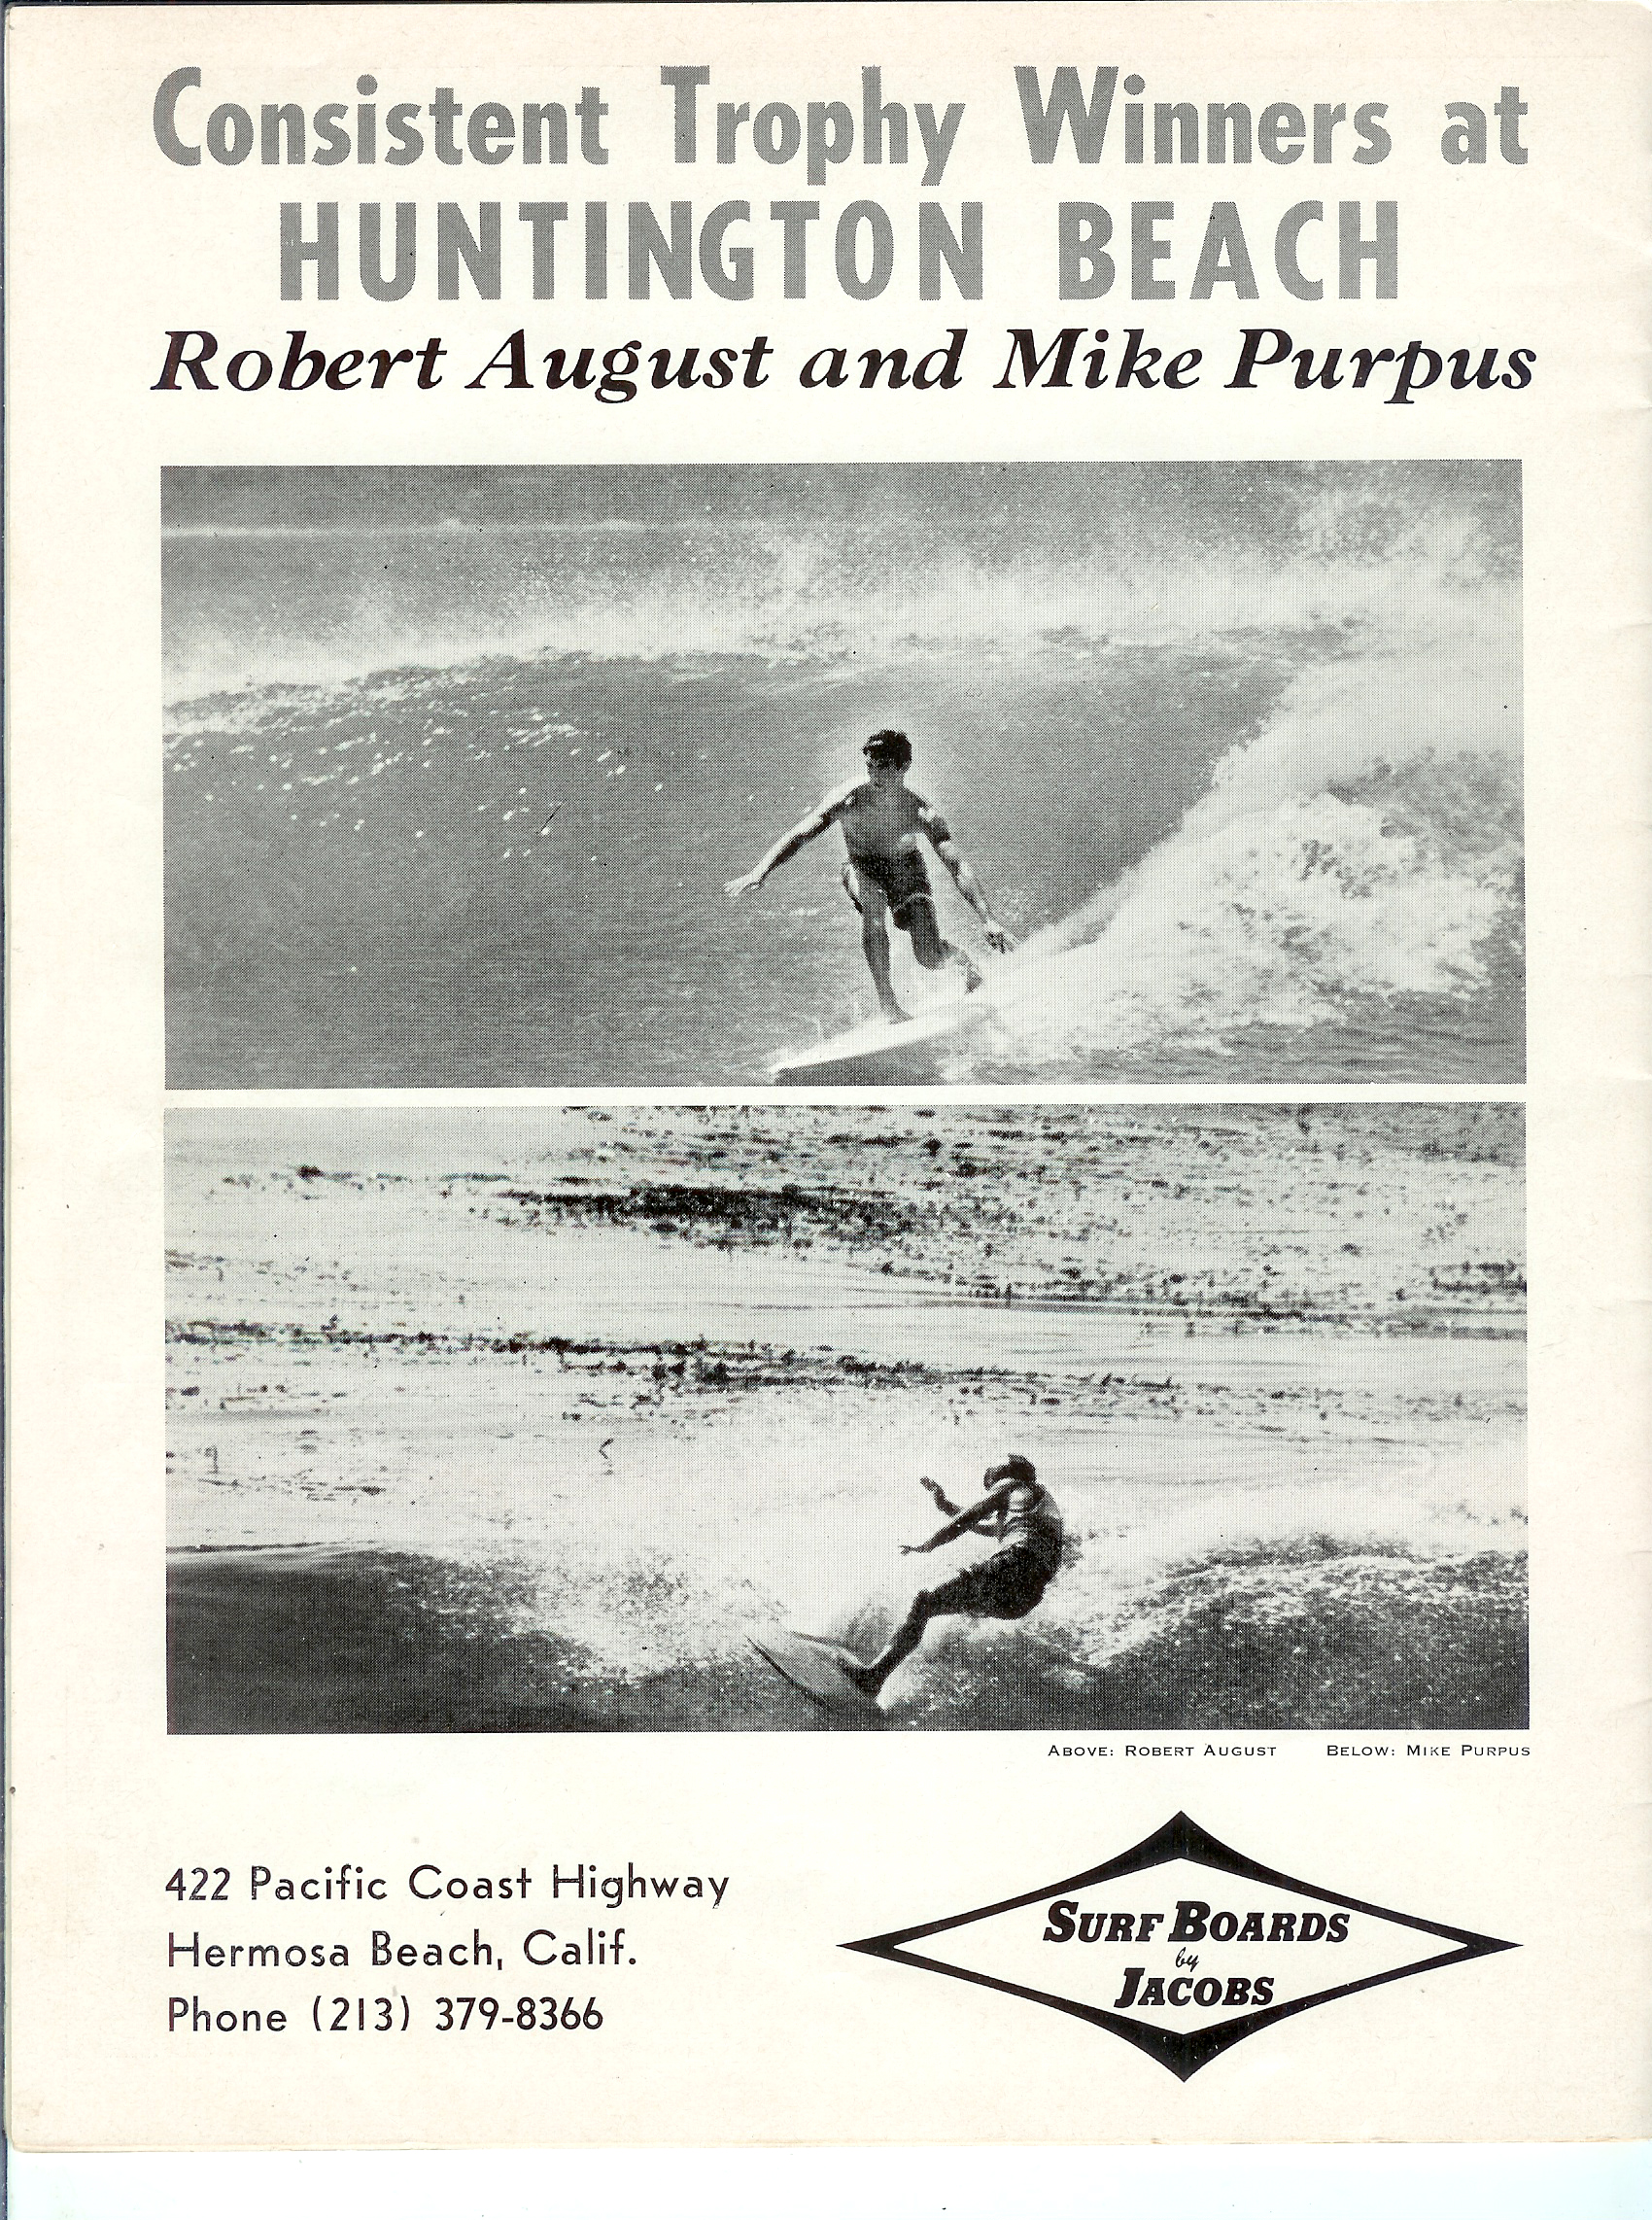 Mike Purpus And Robert August Were Both On The Prestigious Jacobs Surf Team